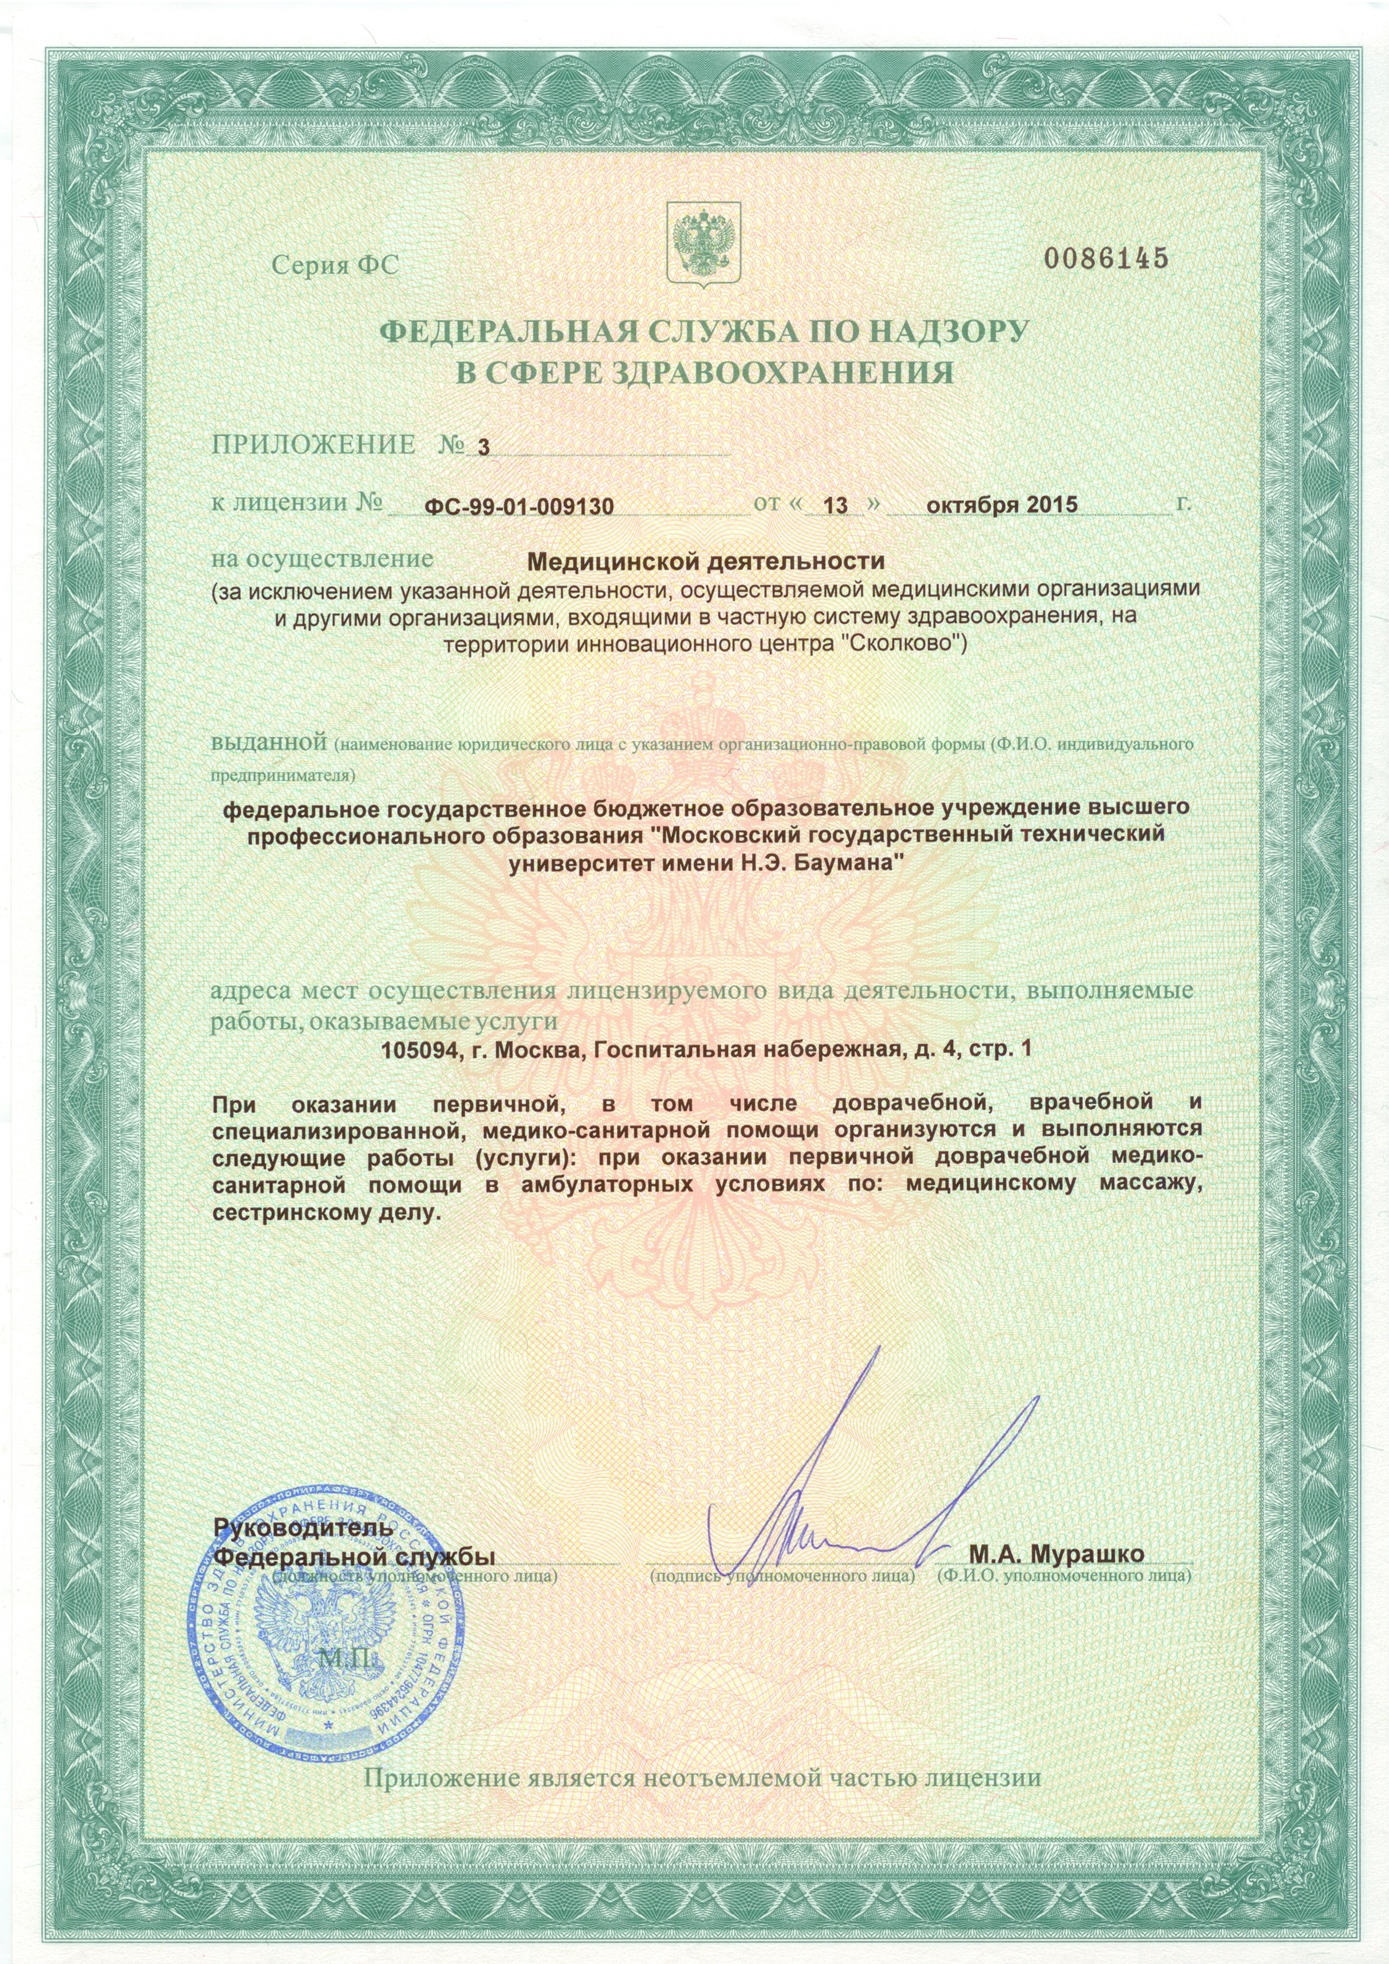 NOMTC license 6.jpg